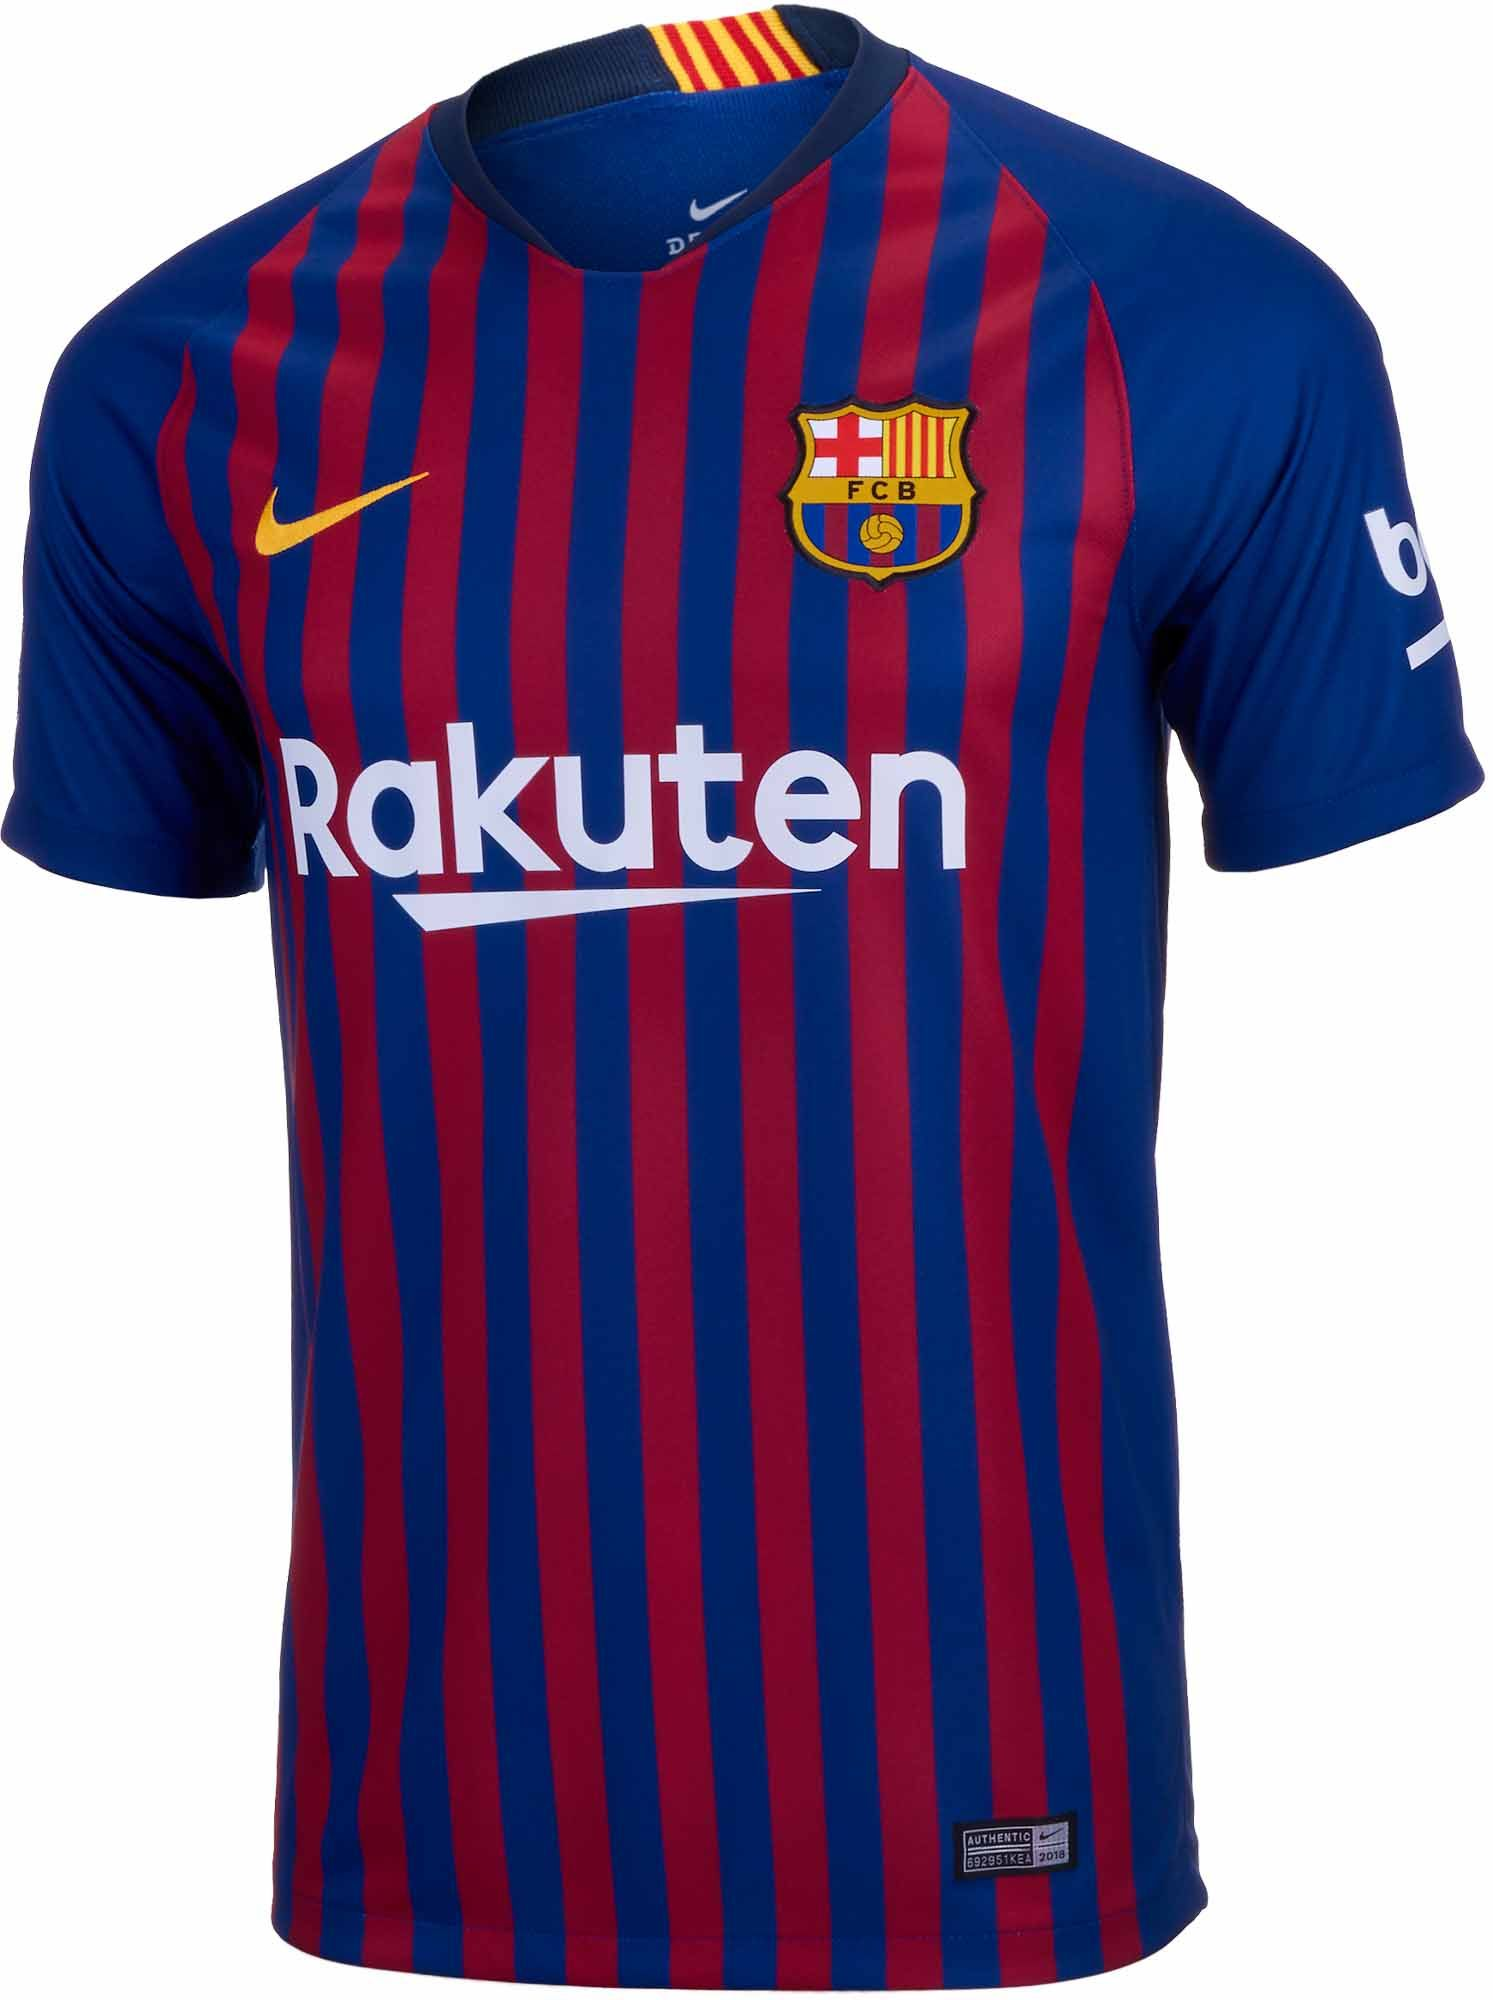 Buy this 2018 19 Kids FC Barcelona Home Jersey from www.soccerpro.com a93e0b2238583